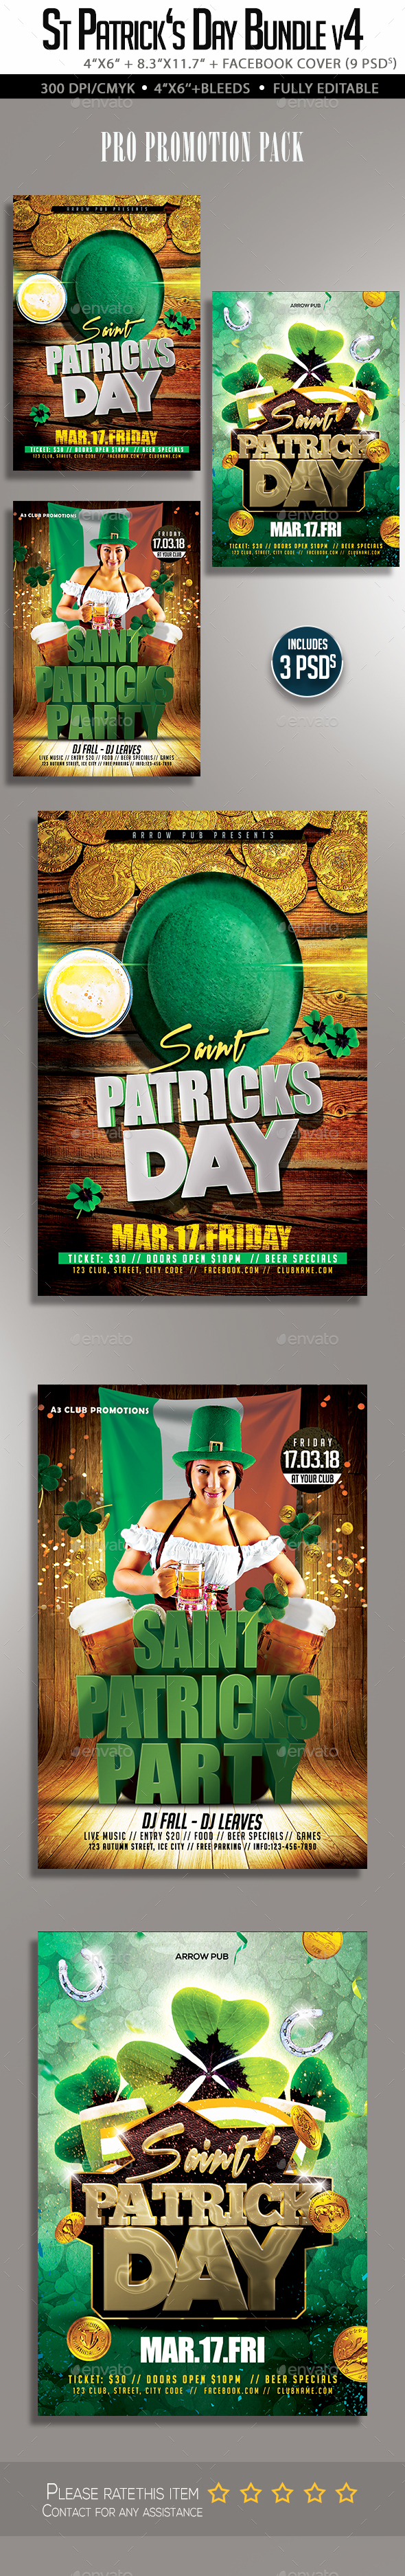 St Patricks Day Flyer Bundle V4 - Clubs & Parties Events